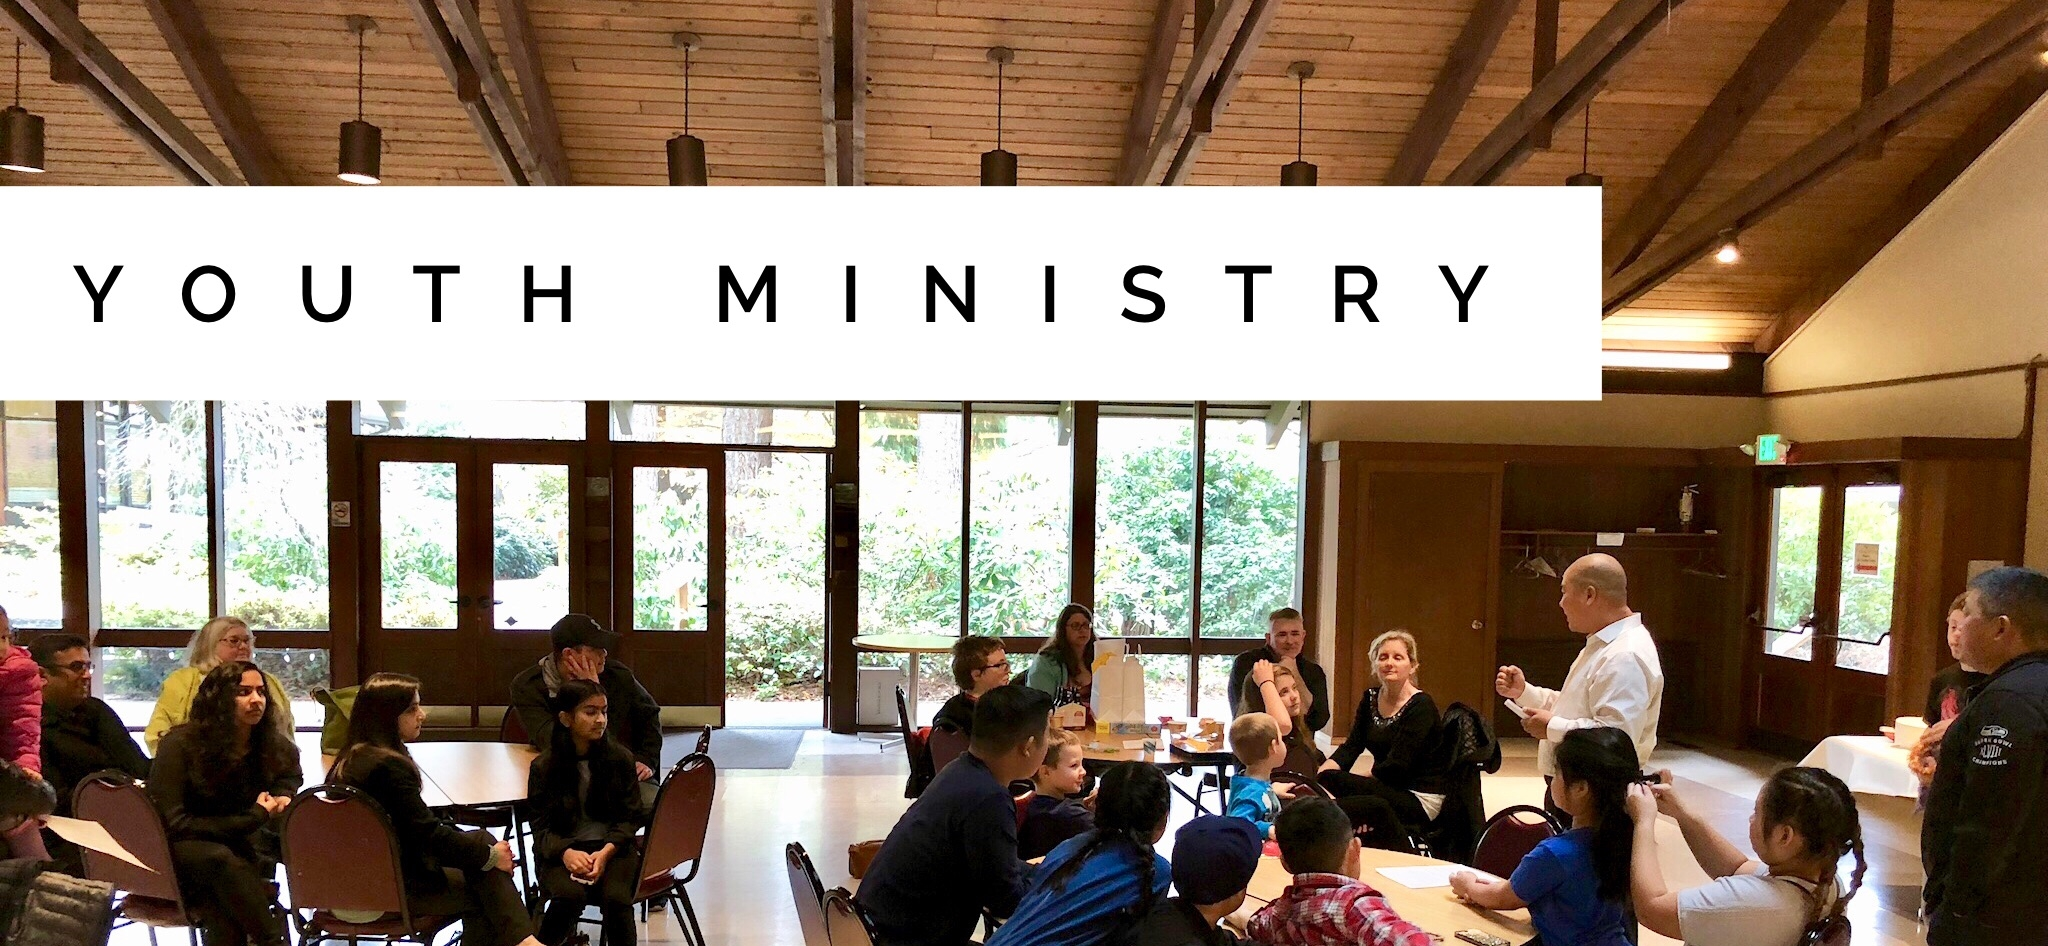 OPPC Overlake Park Youth Ministry